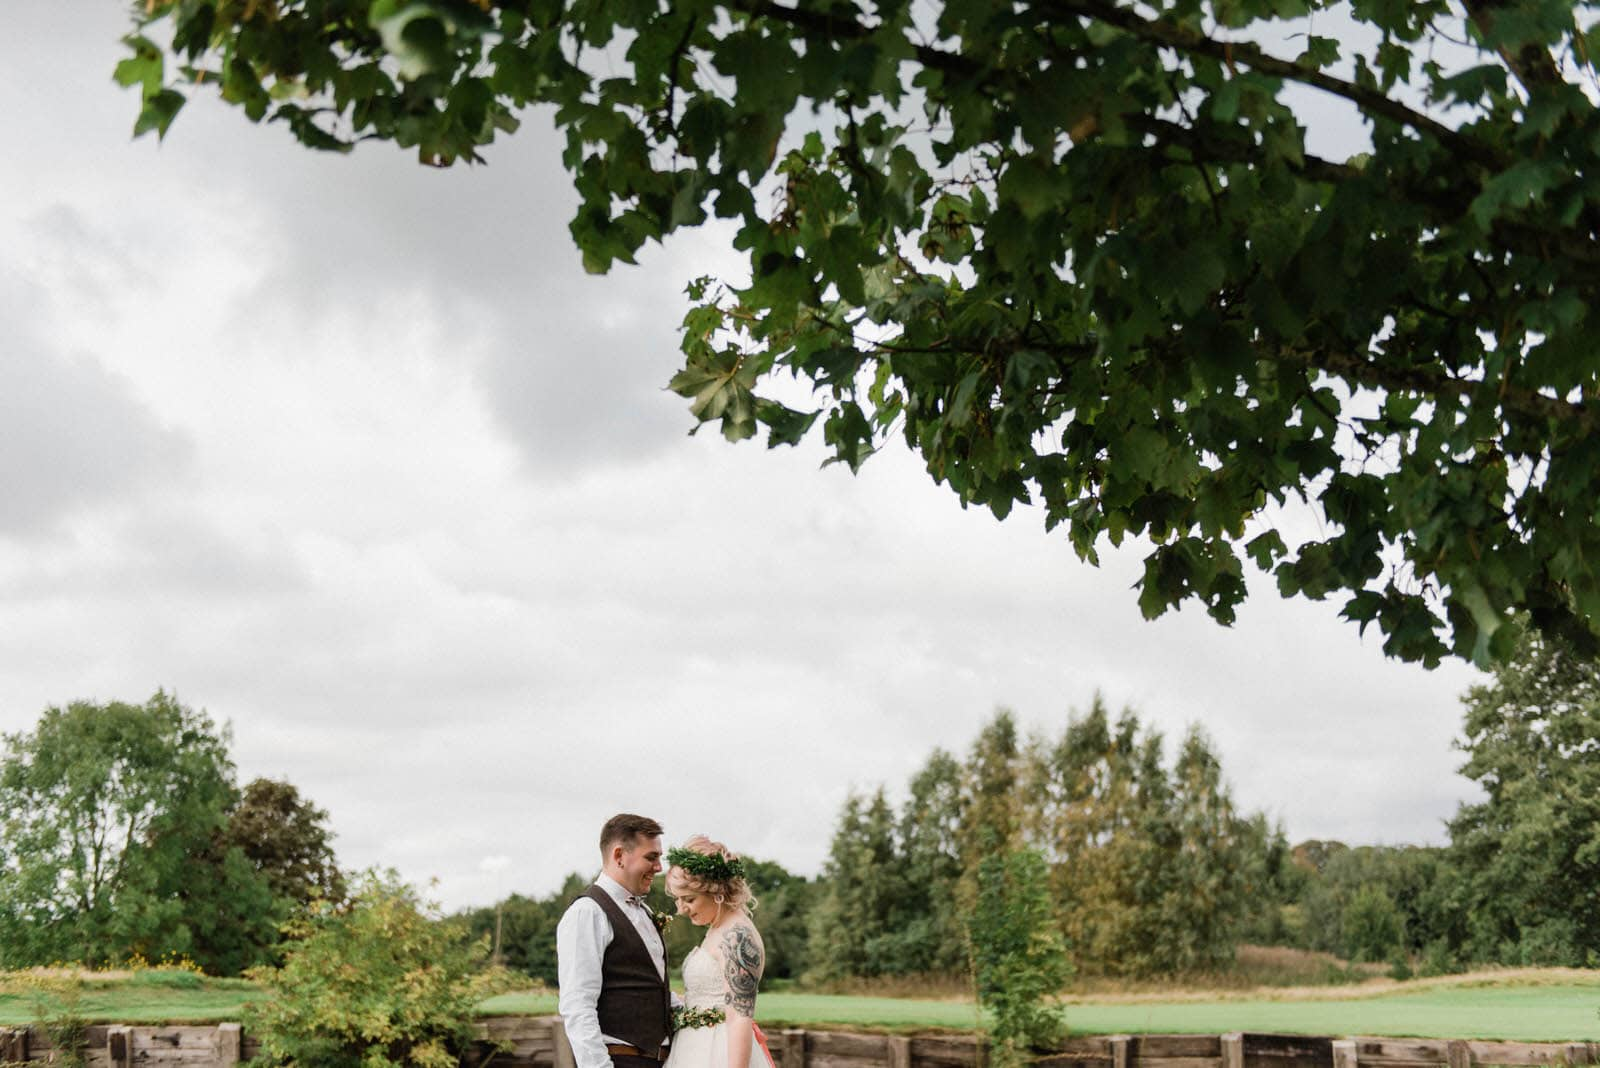 Bride and groom close together under a beautiful tree in the shade at Hirst Priory wedding